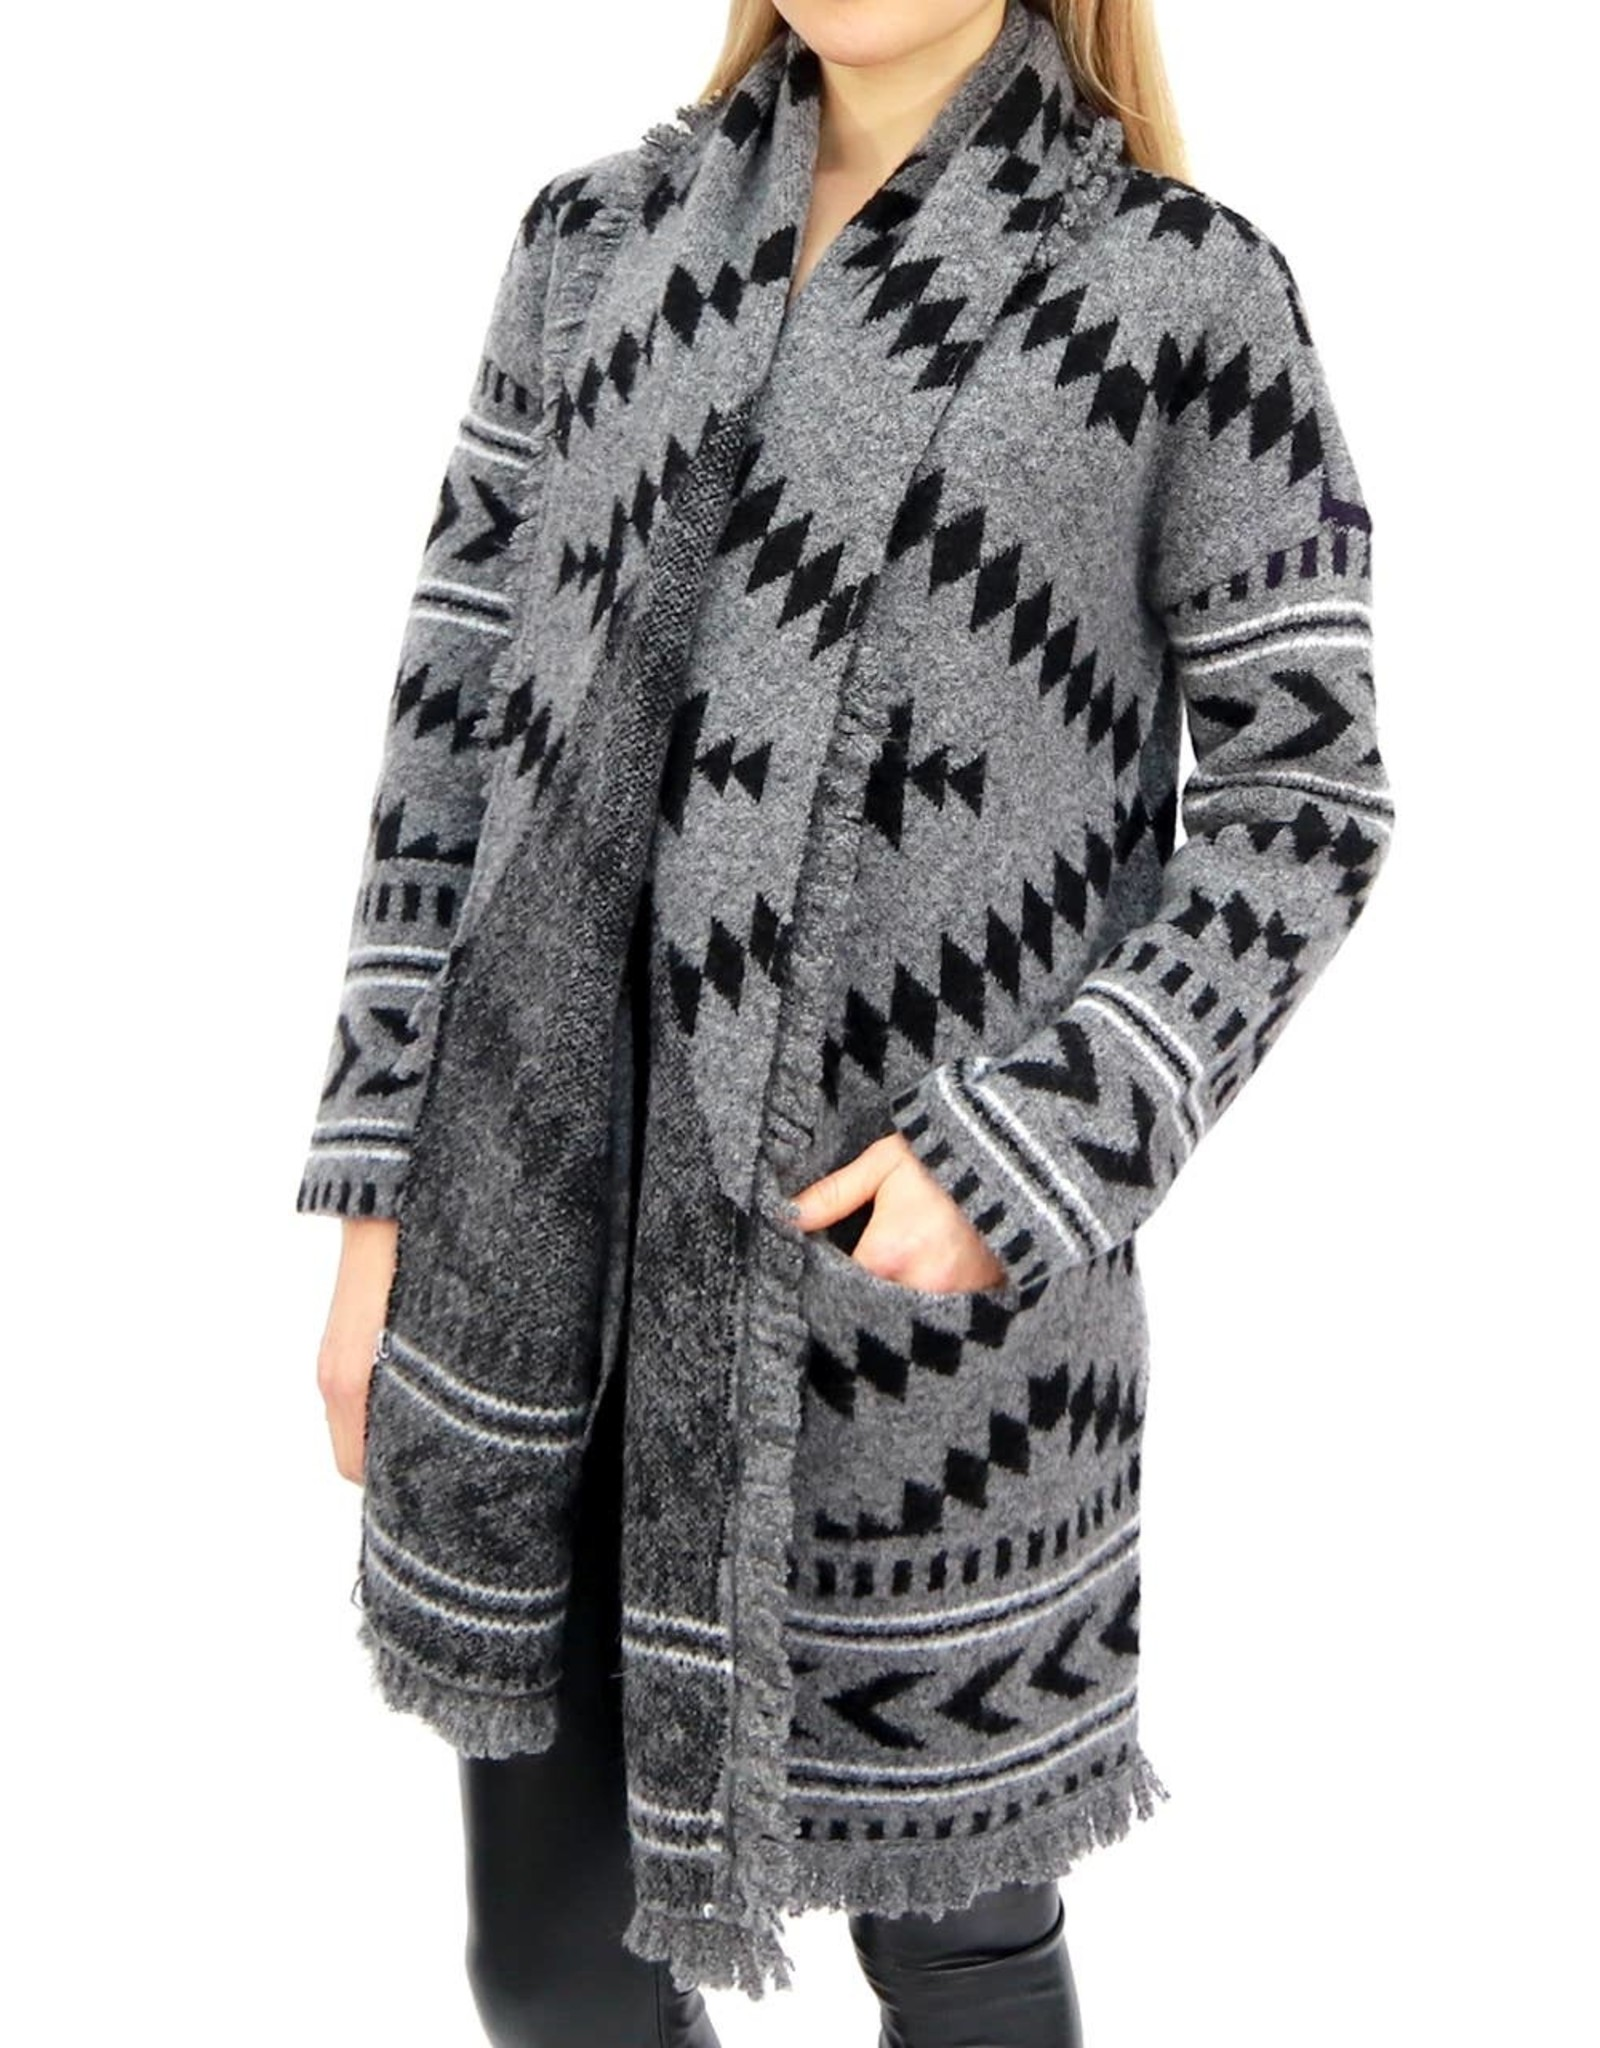 RD STYLE Aztec Knit Sweater